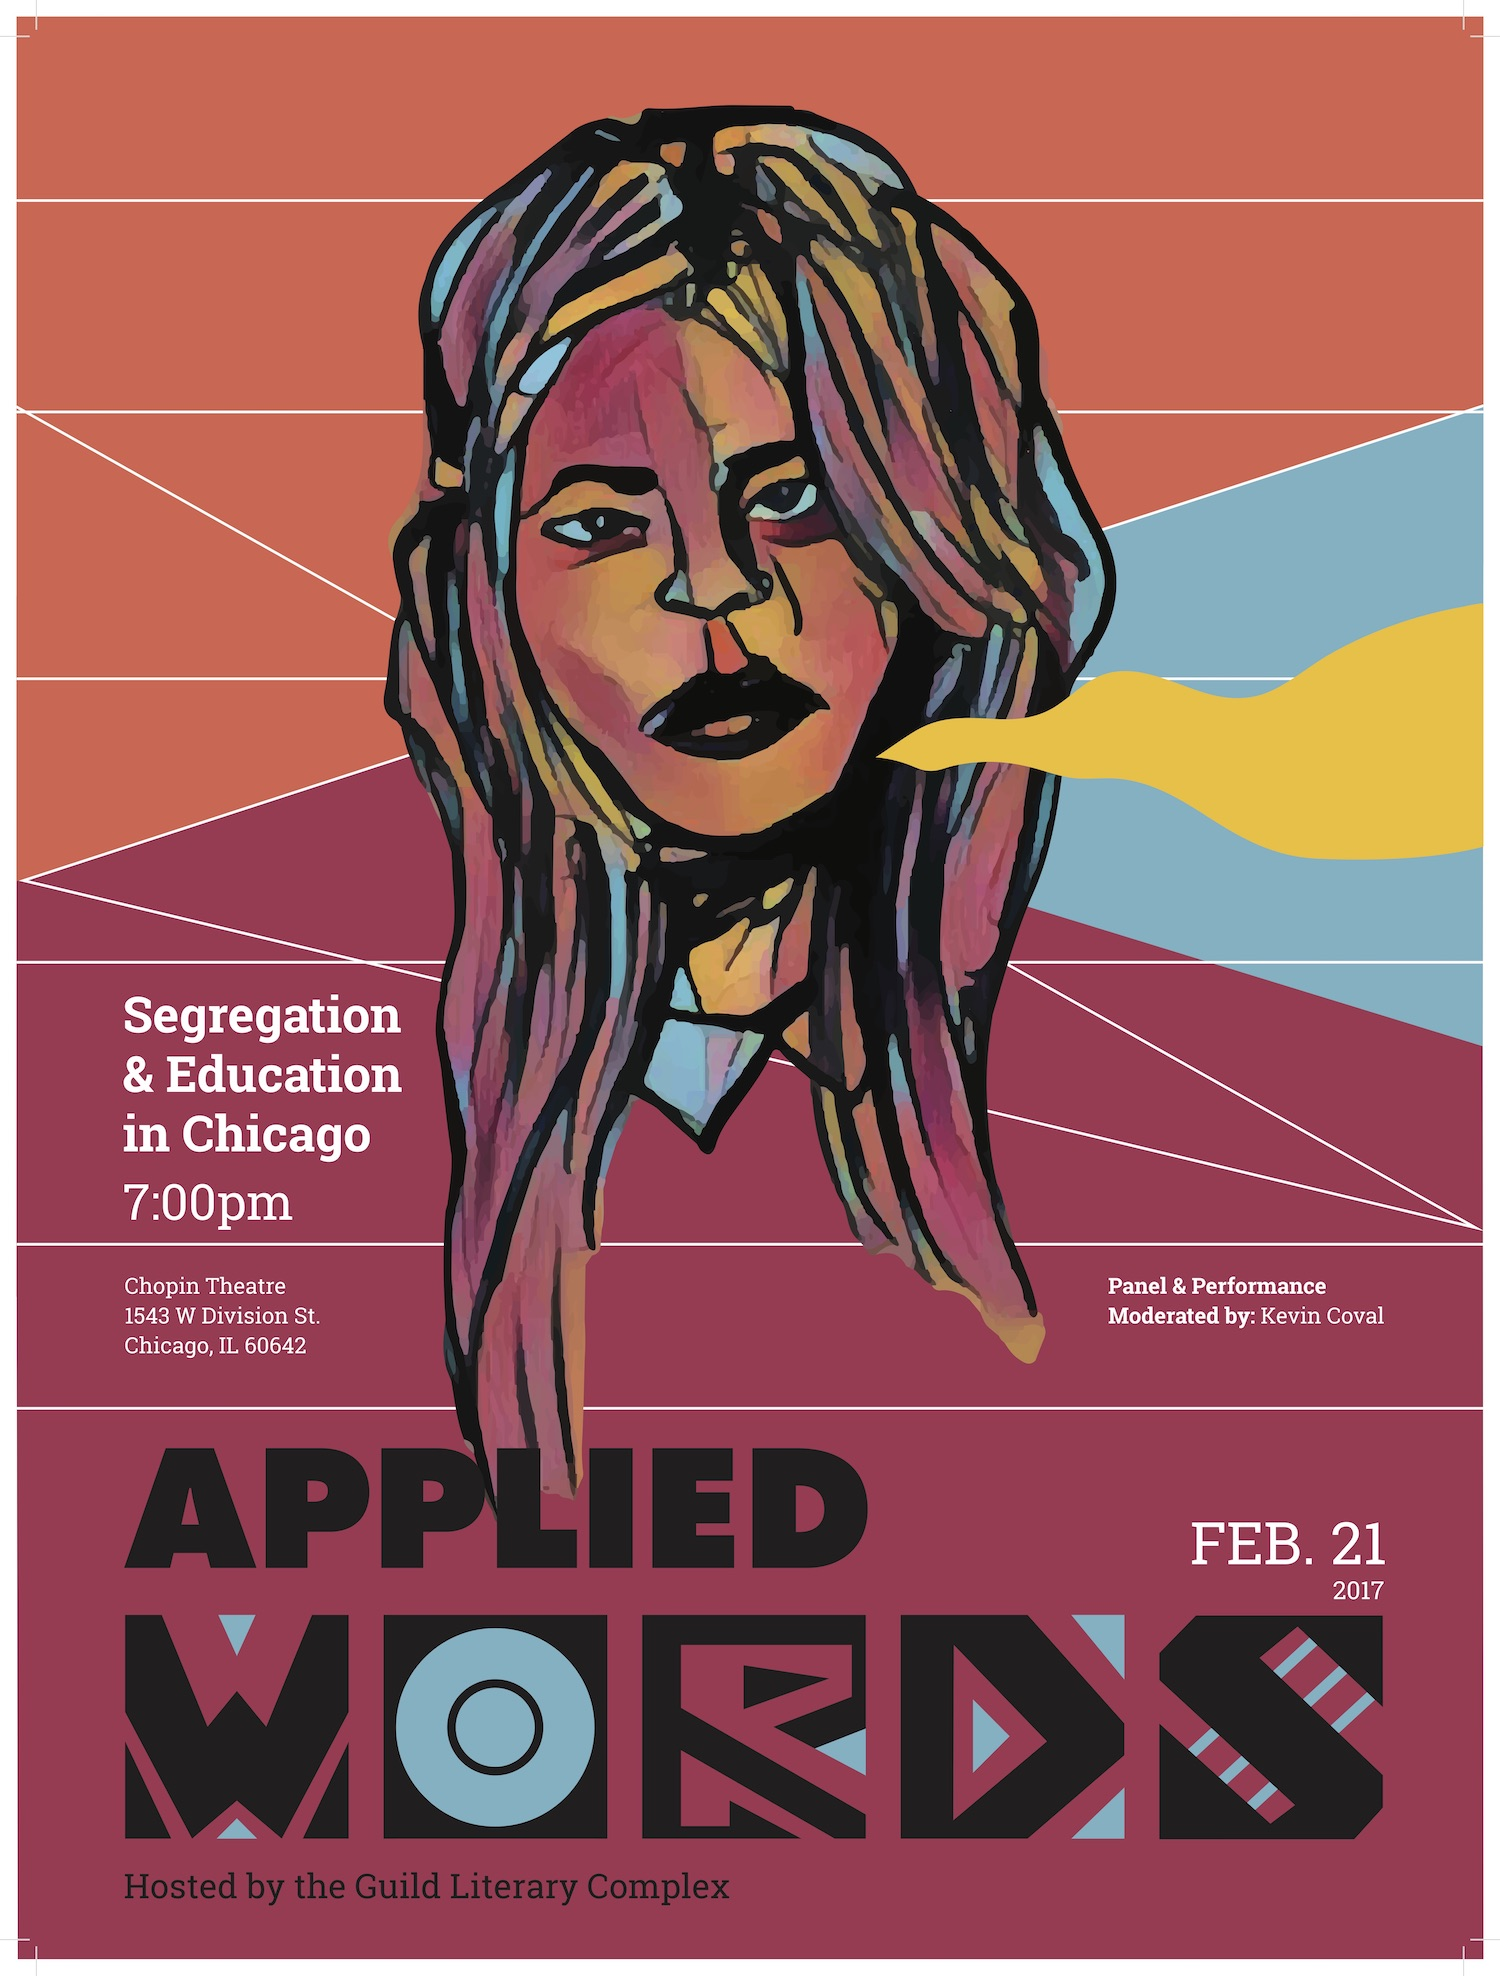 Applied Words is Back, Tonight at Chopin Theatre with a conversation around Segregation and Education in Chicago, and the impact of the Arts